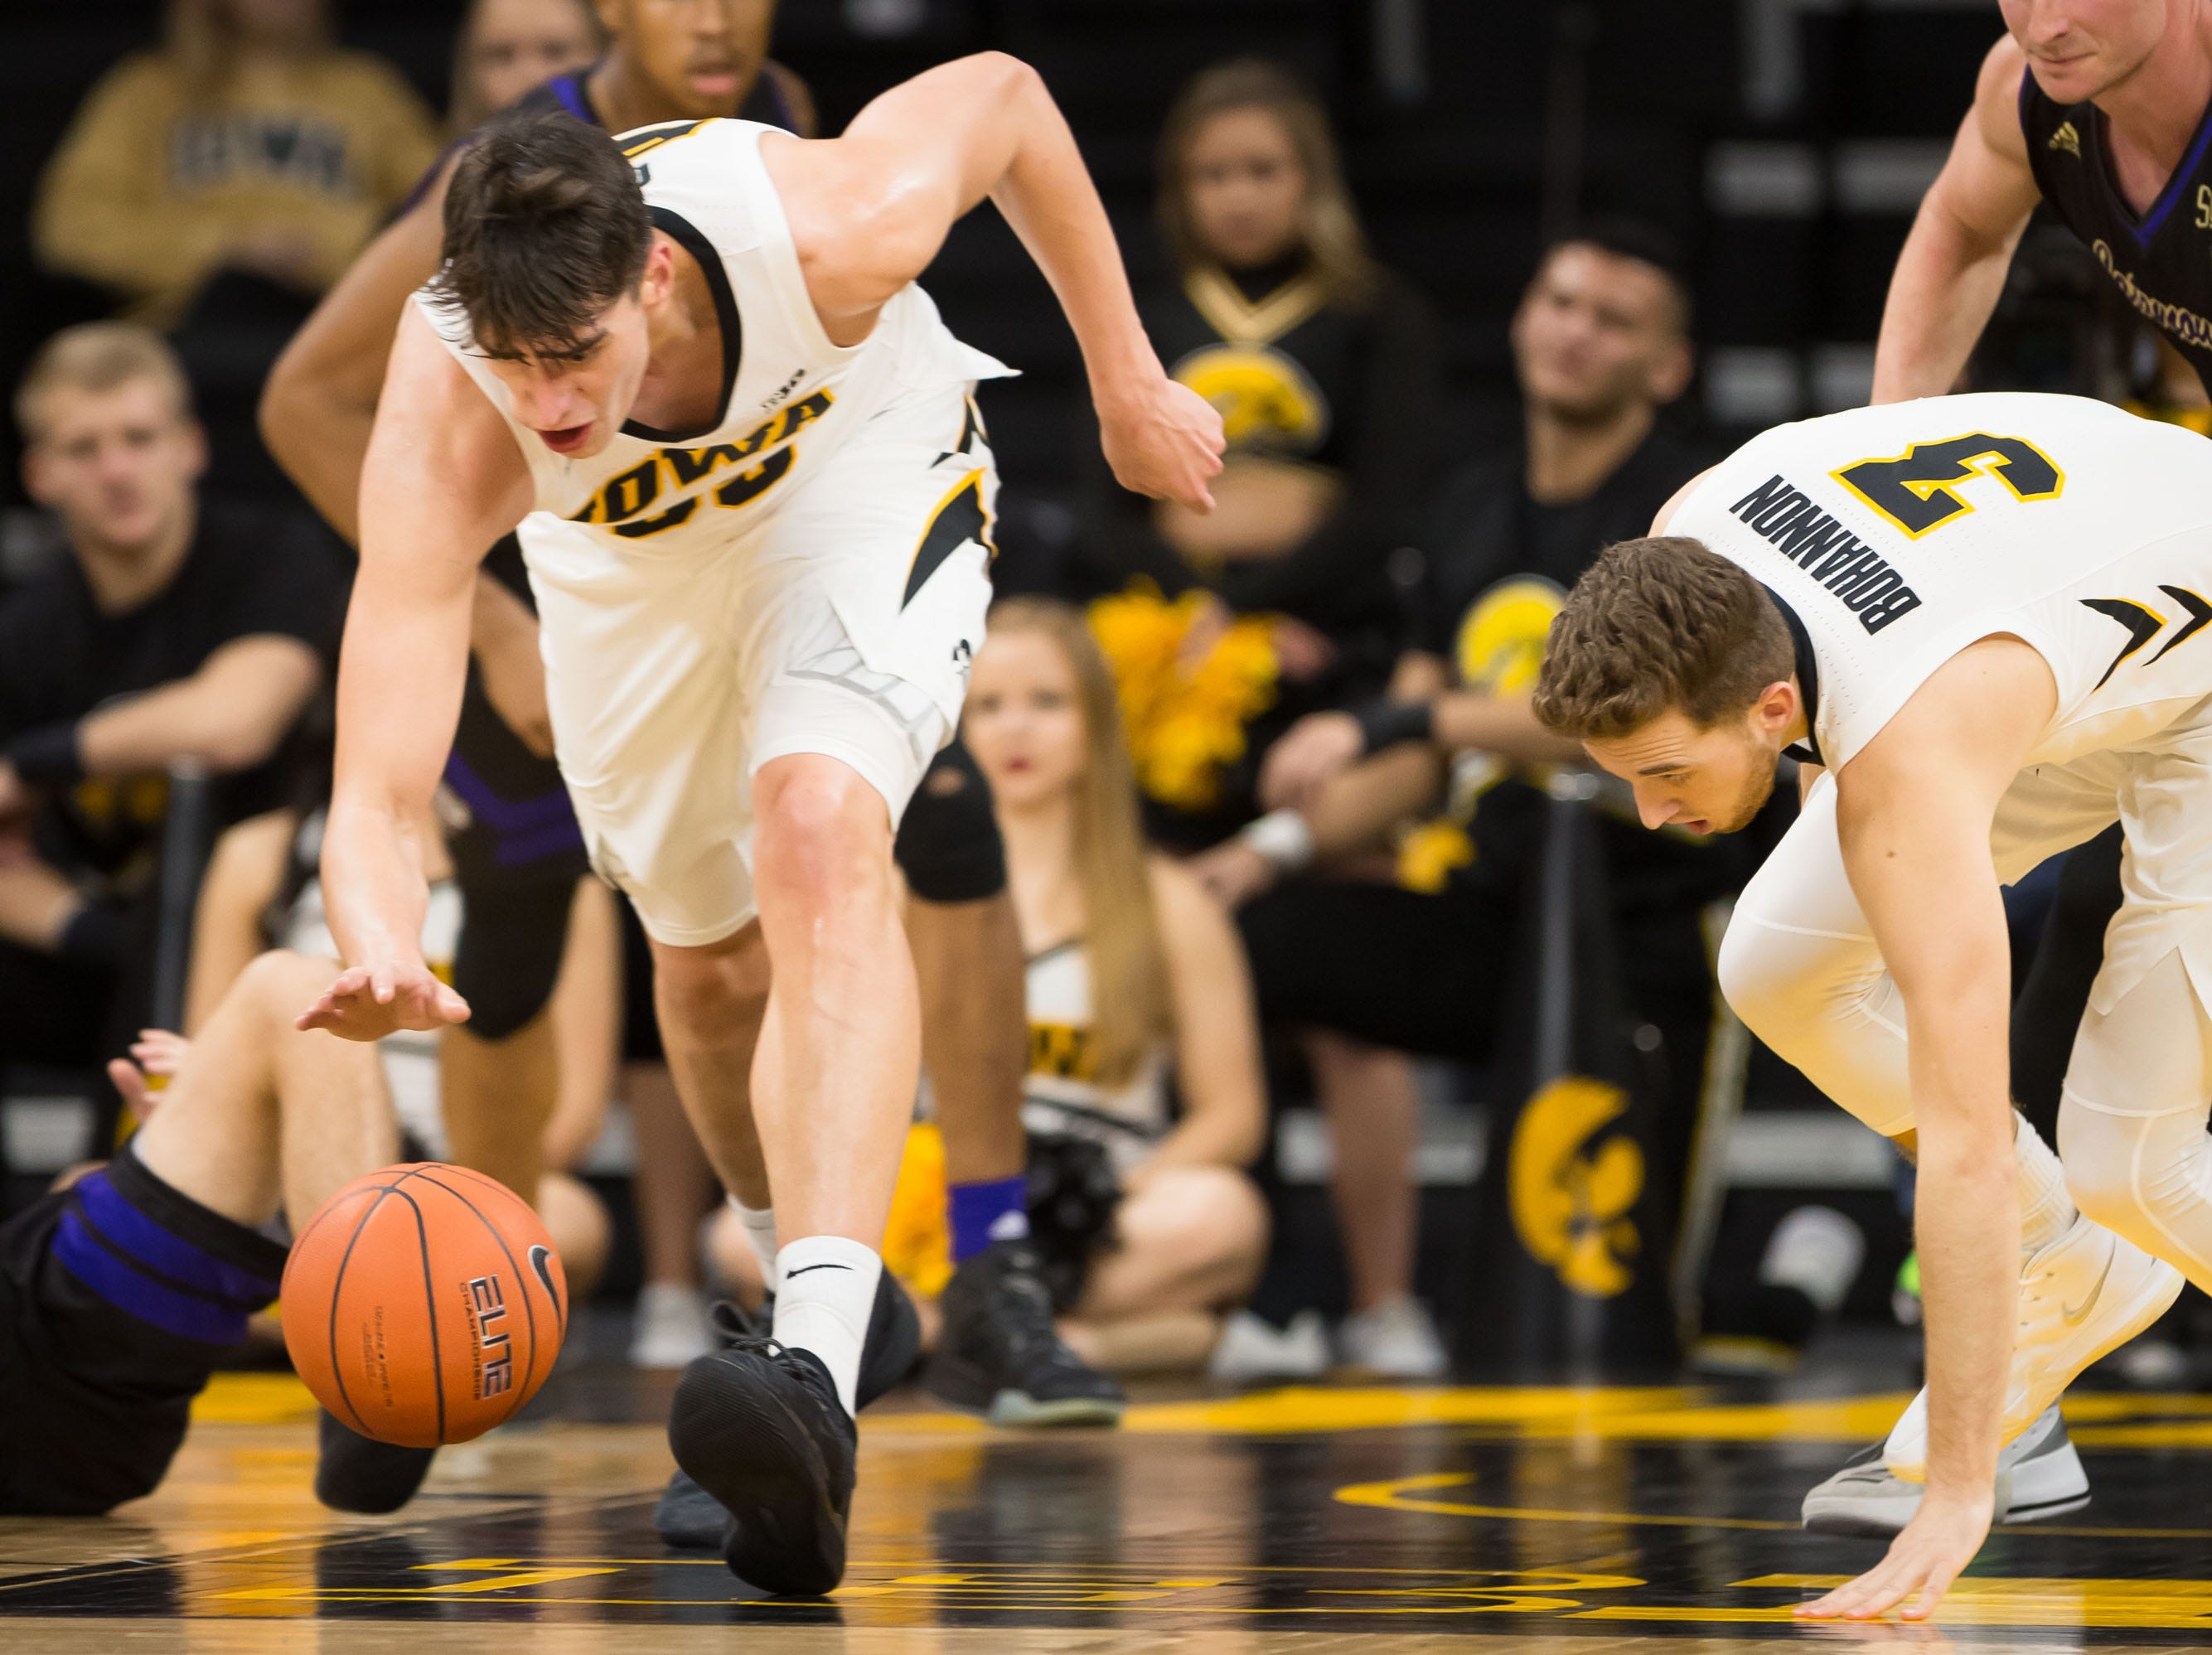 Iowa sophomore forward Luka Garza (55) scoops up the ball on the run in the second half at Carver Hawkeye Arena in Iowa City on Tuesday, Dec. 18, 2018.